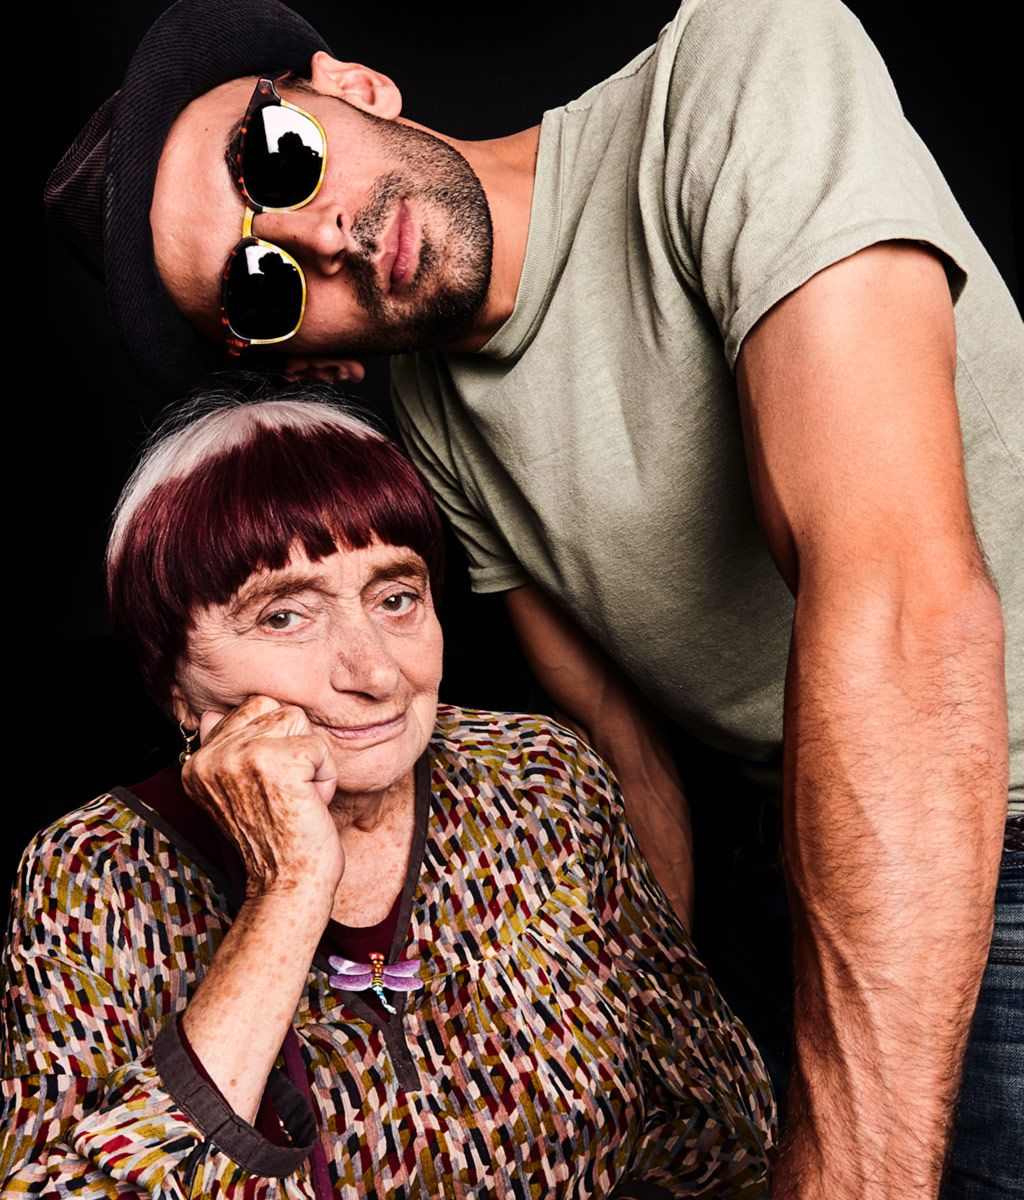 Agnes Varda And Jr Talk Aging Faces Places And Road Trips Over Afternoon Tea